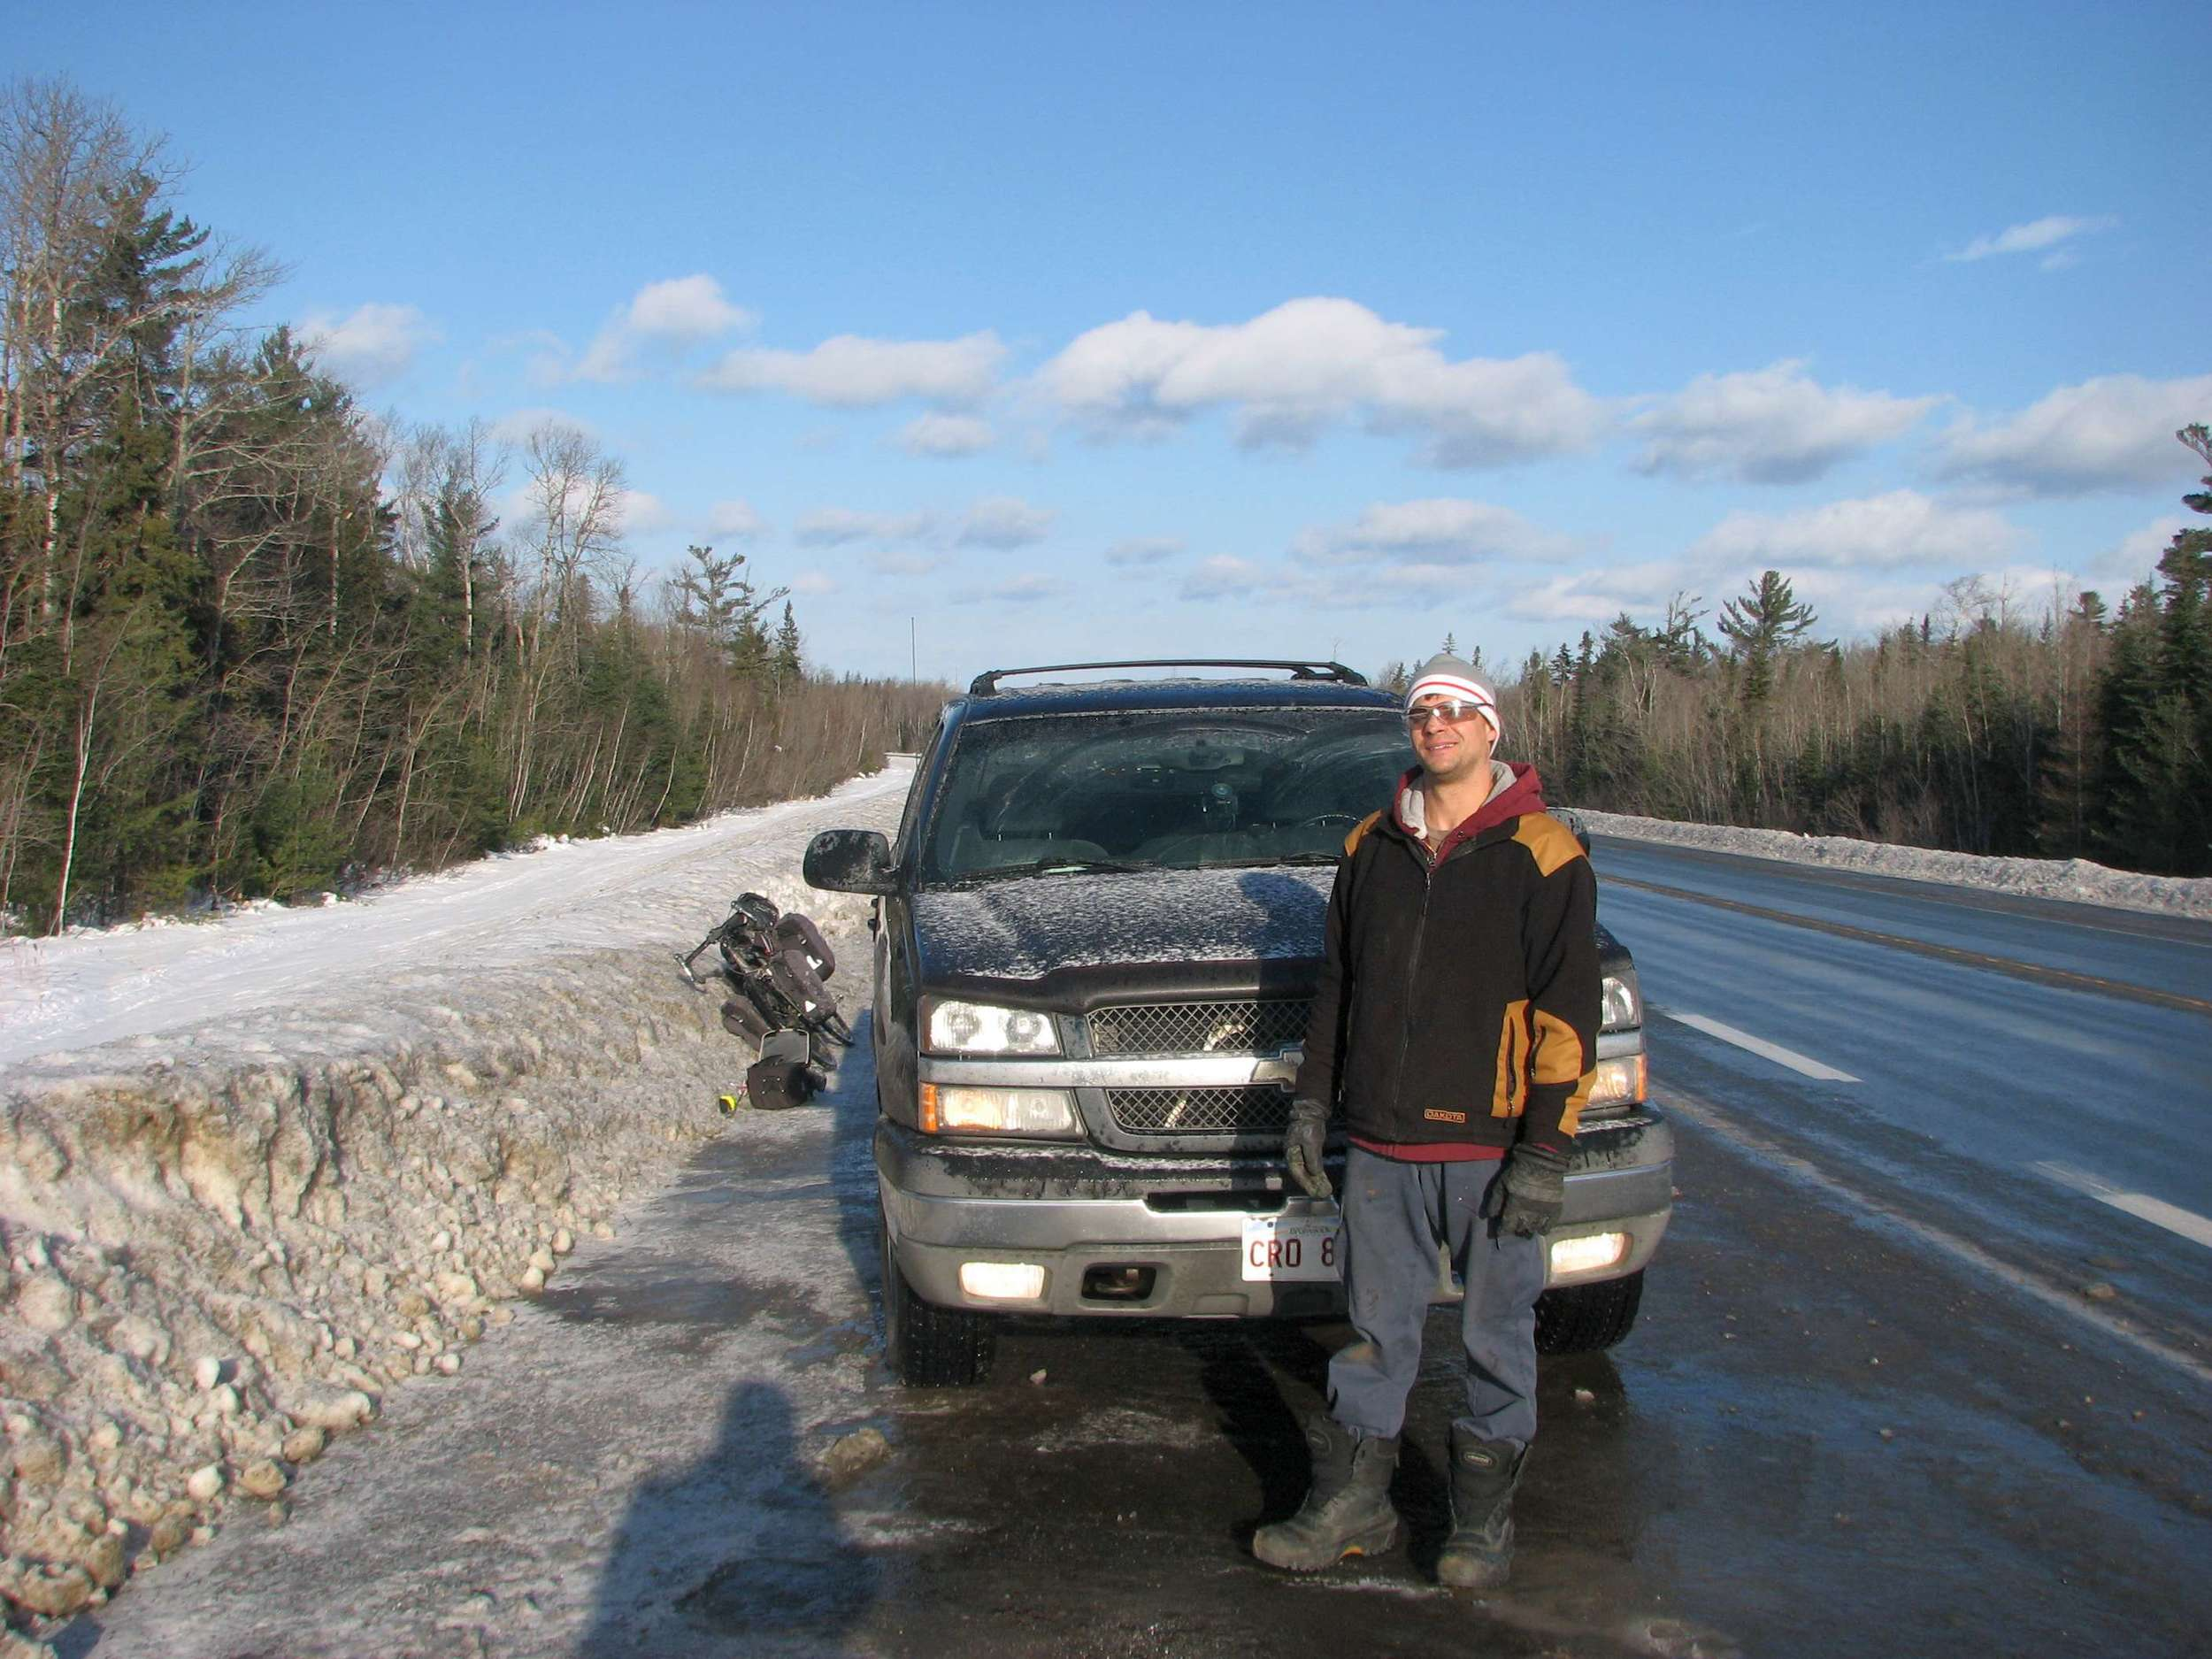 Michael from Caraquet who drove me back 30km. Thank you!